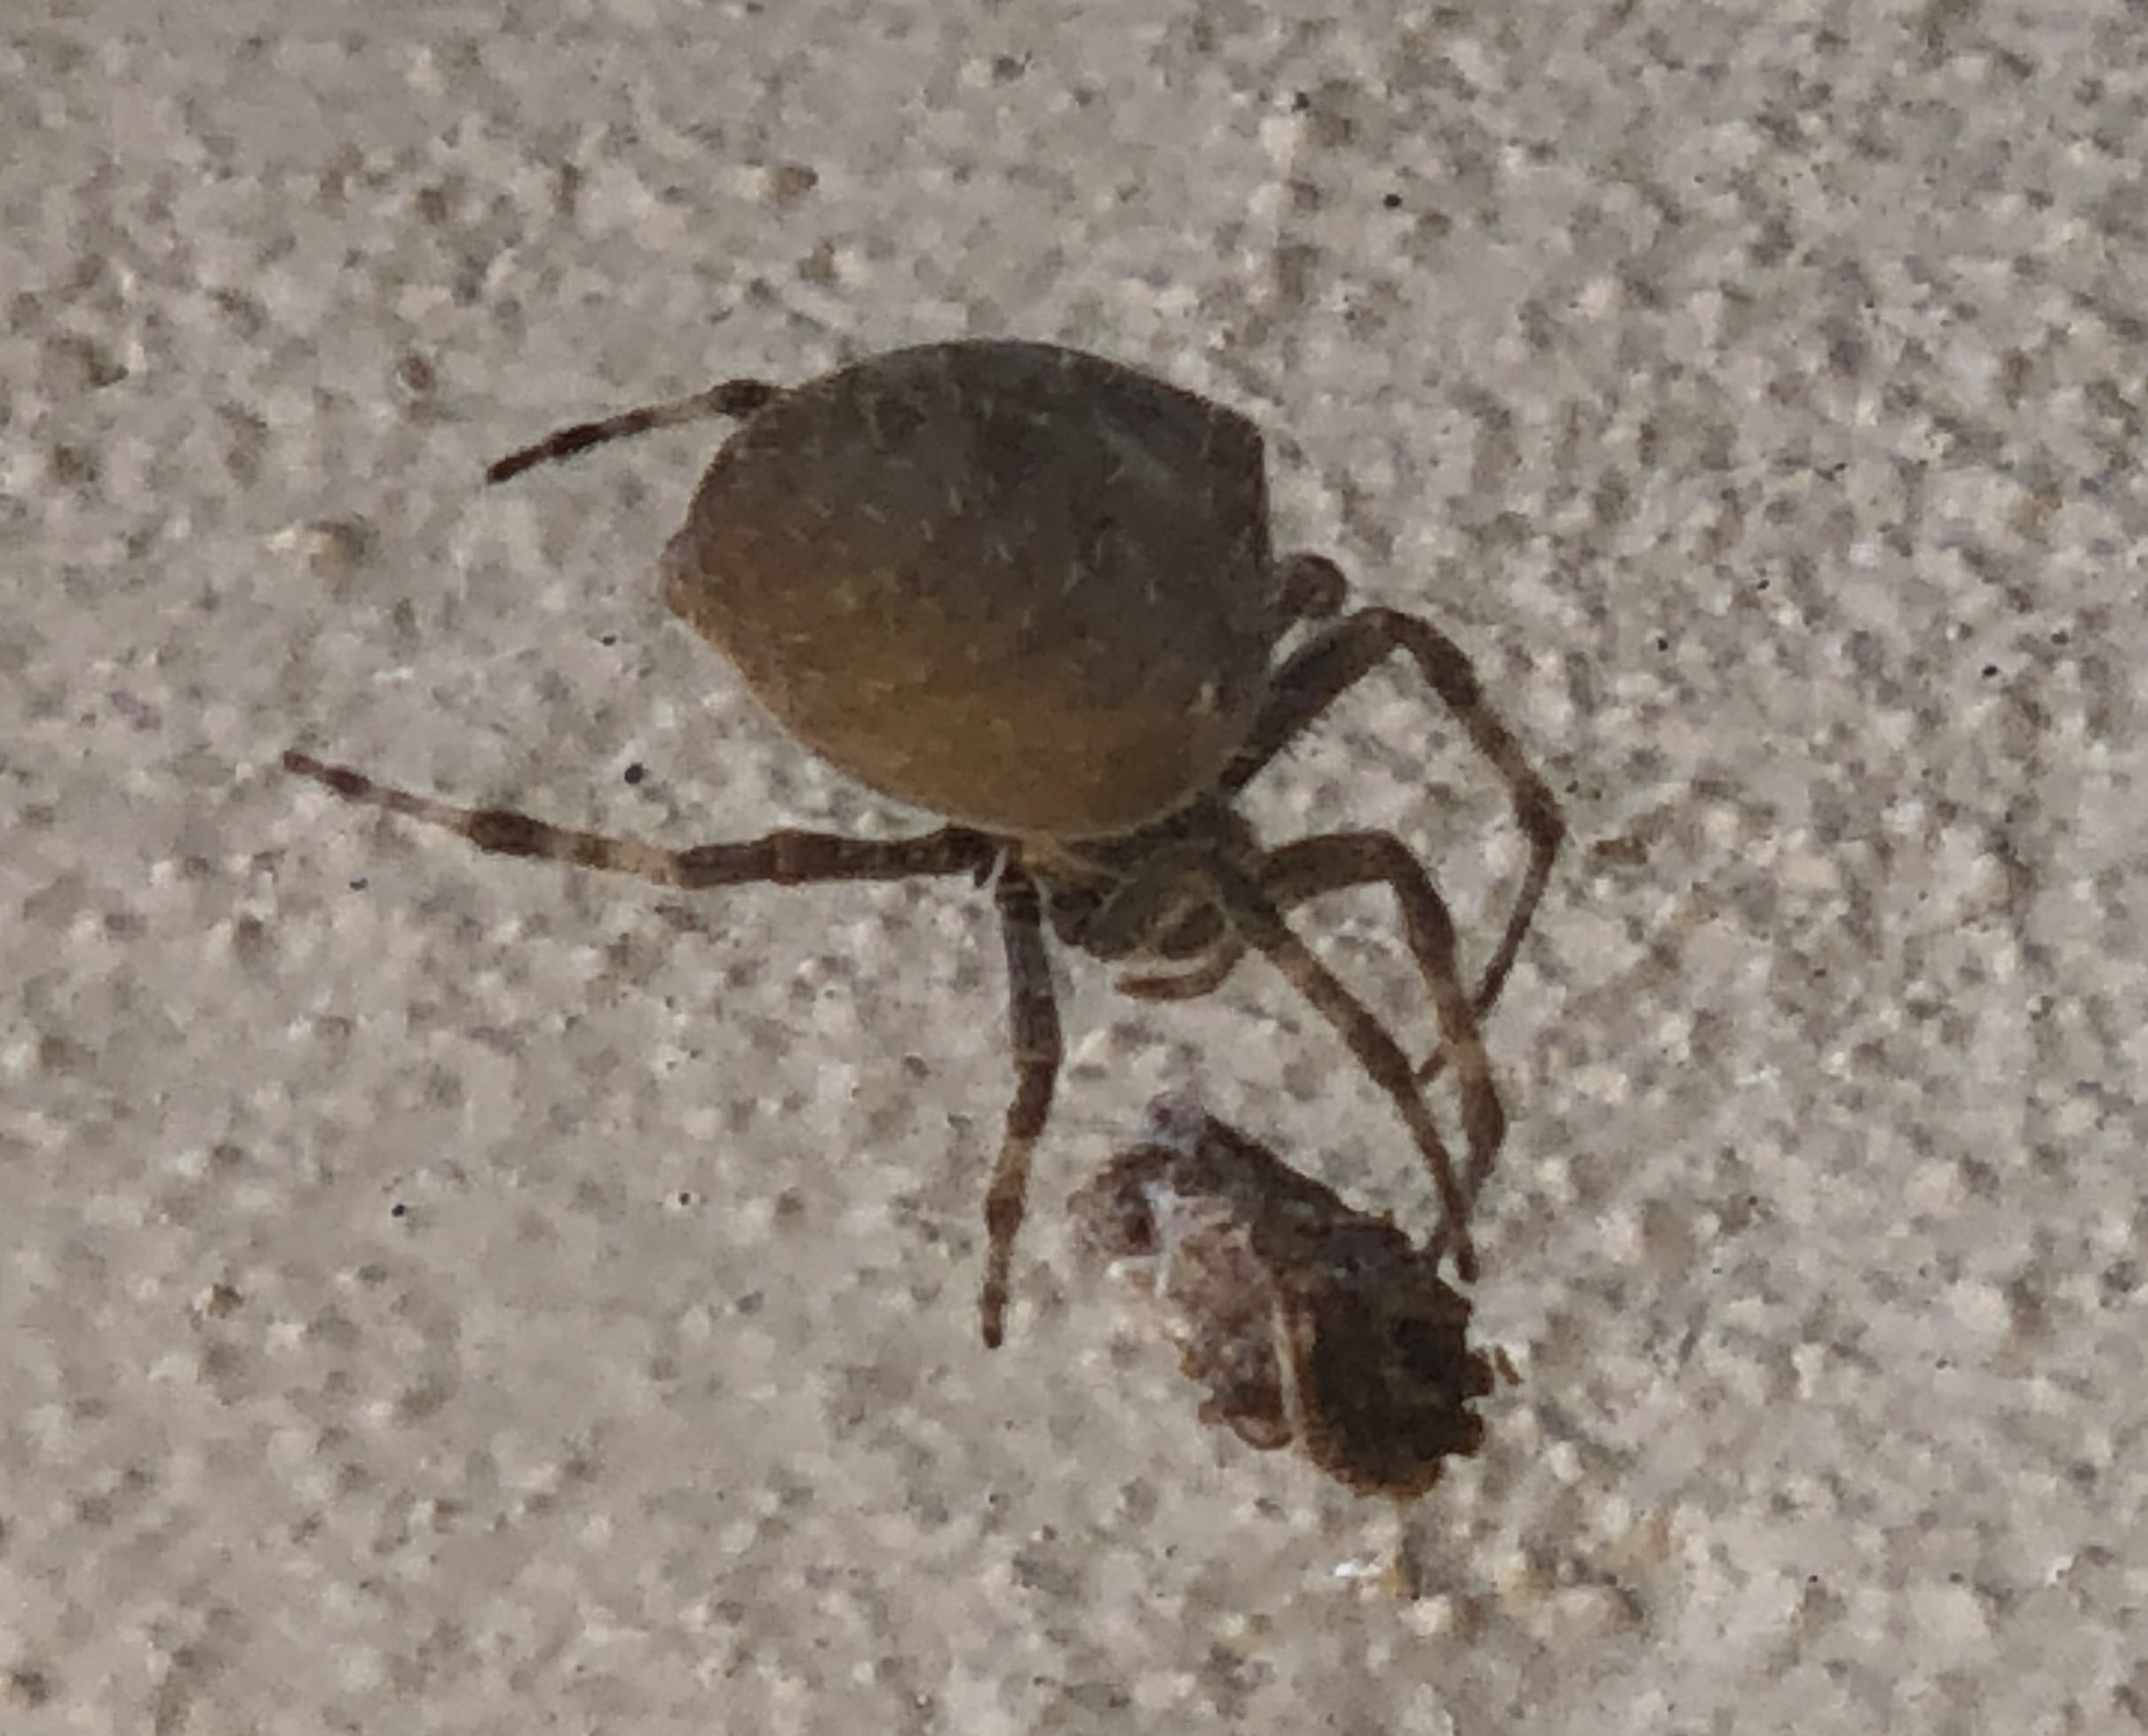 Picture of Araneus gemma - Lateral